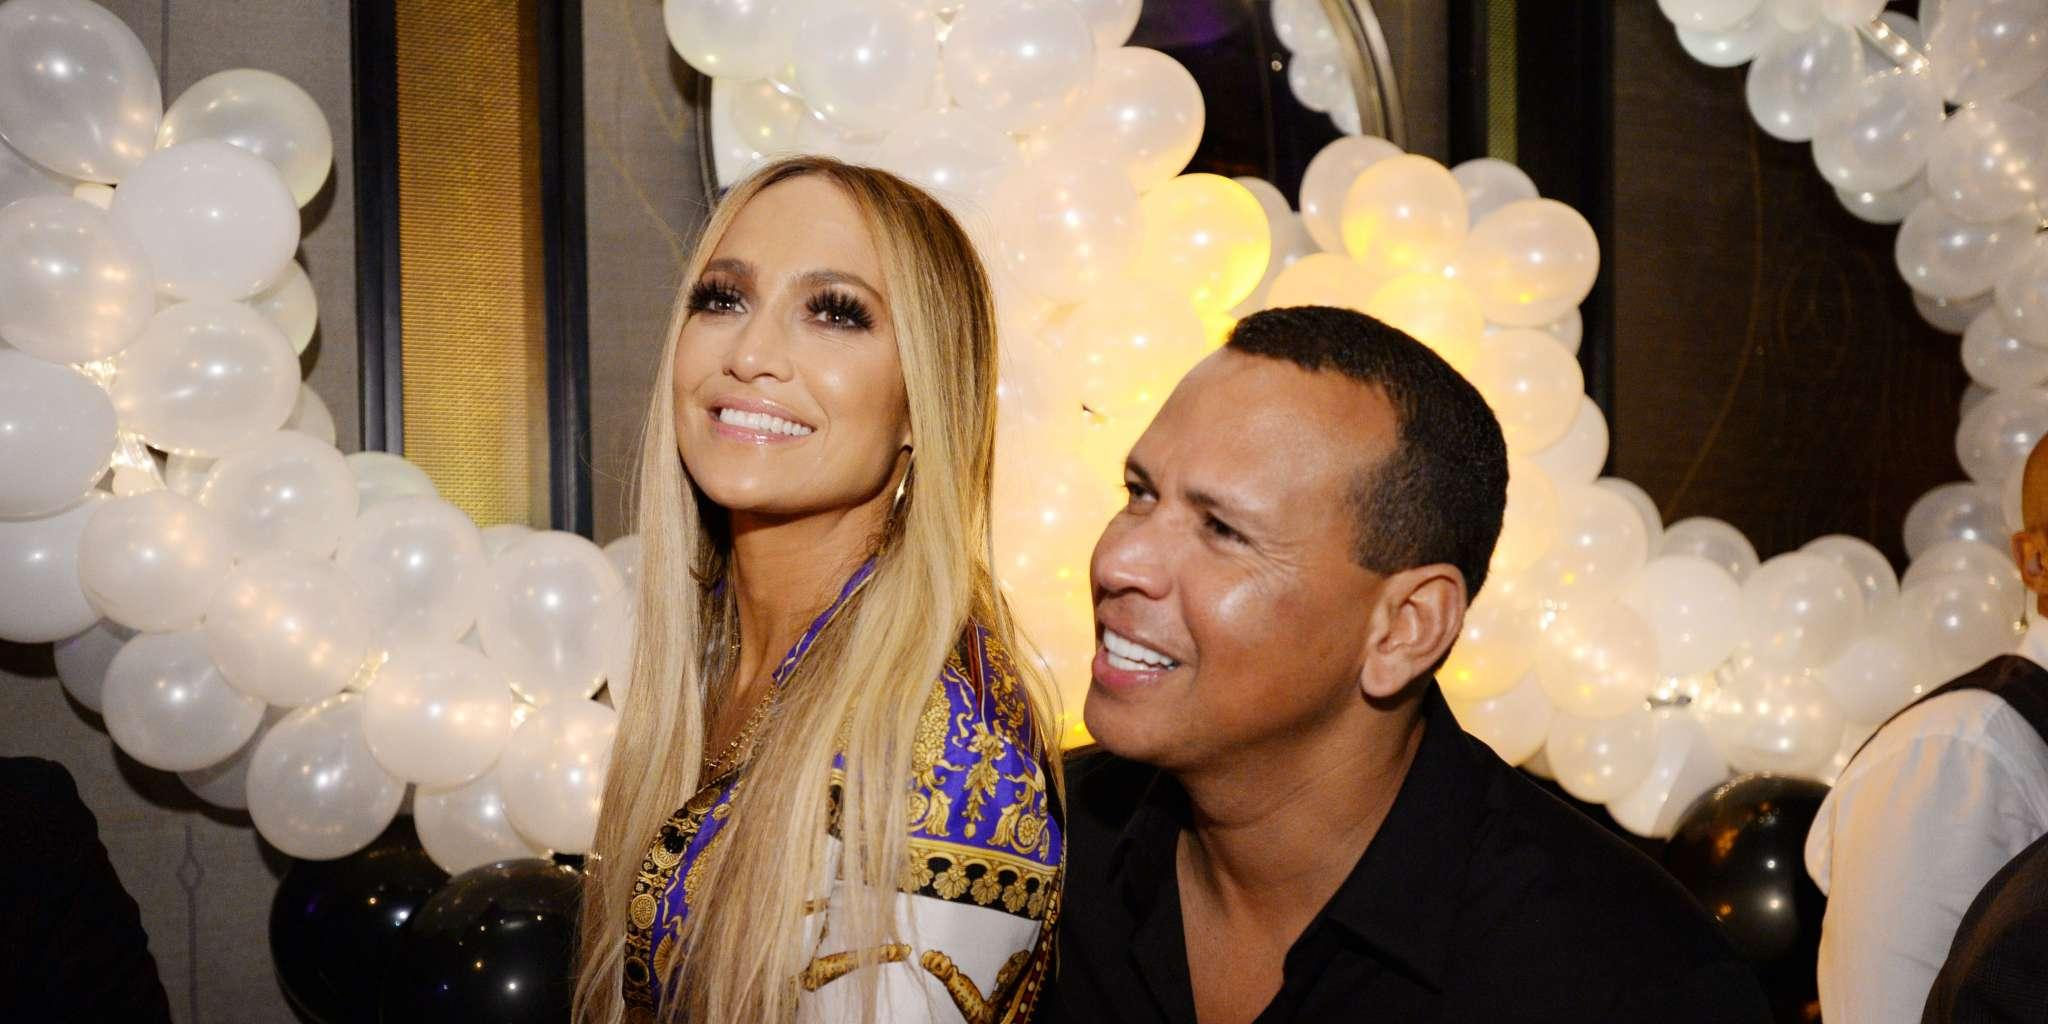 Jennifer Lopez Gushes Over Alex Rodriguez's Most Romantic Gift Ever - You Won't Believe What It Is!